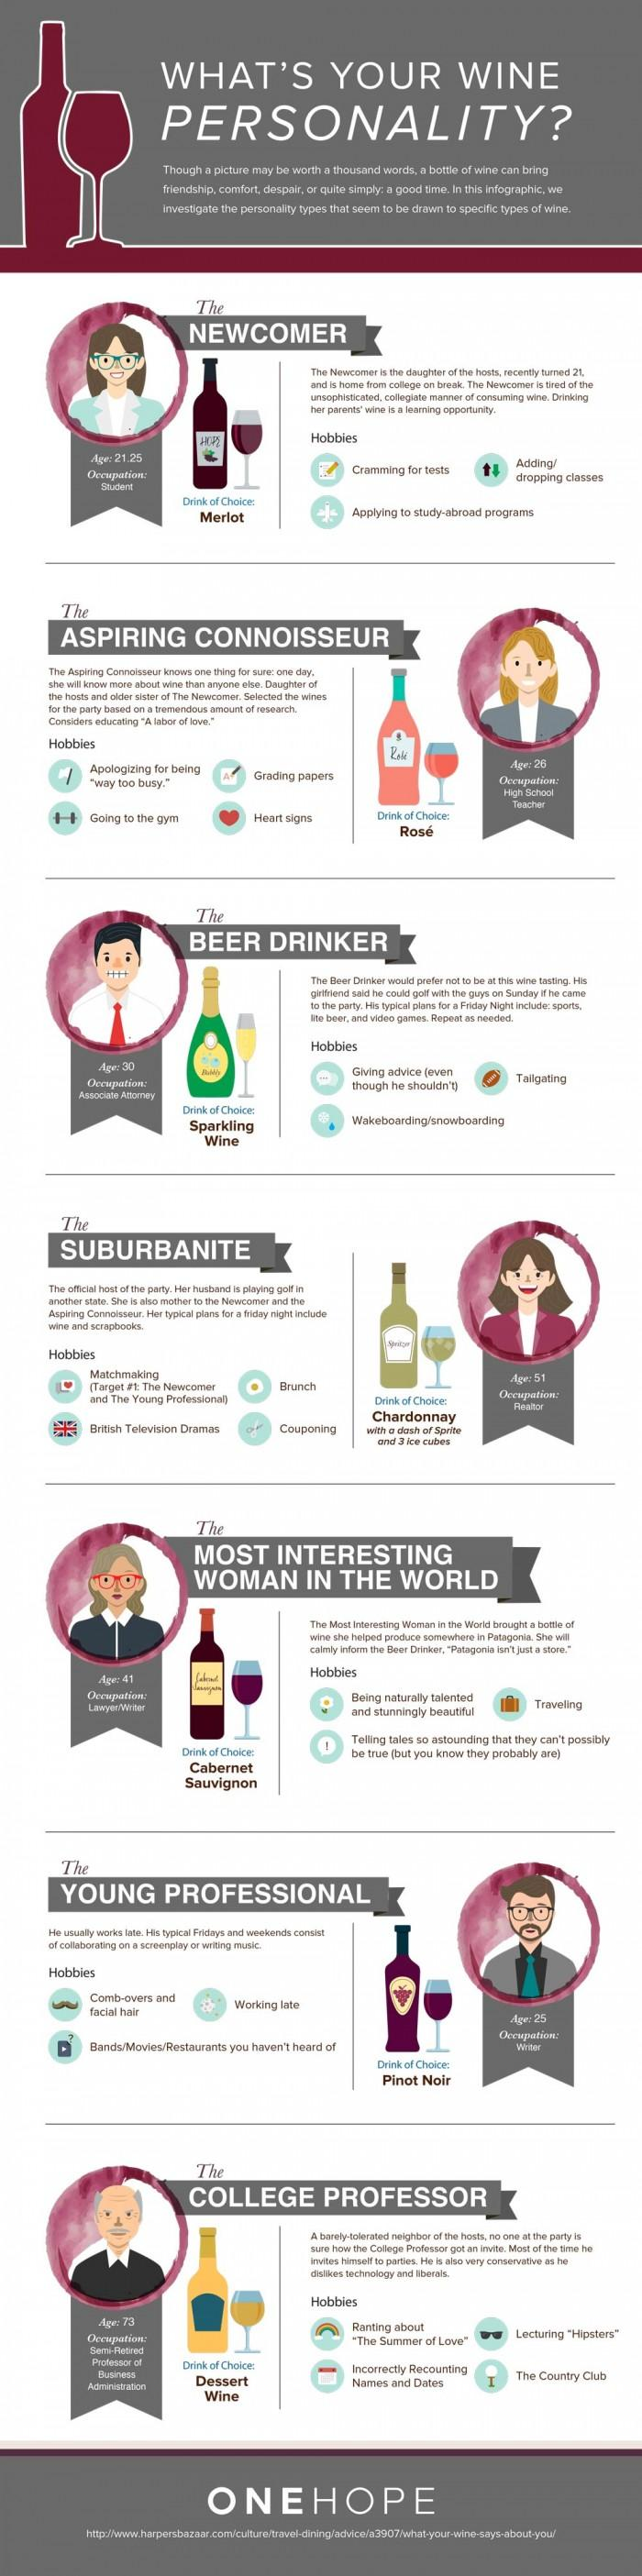 What's Your Wine Personality